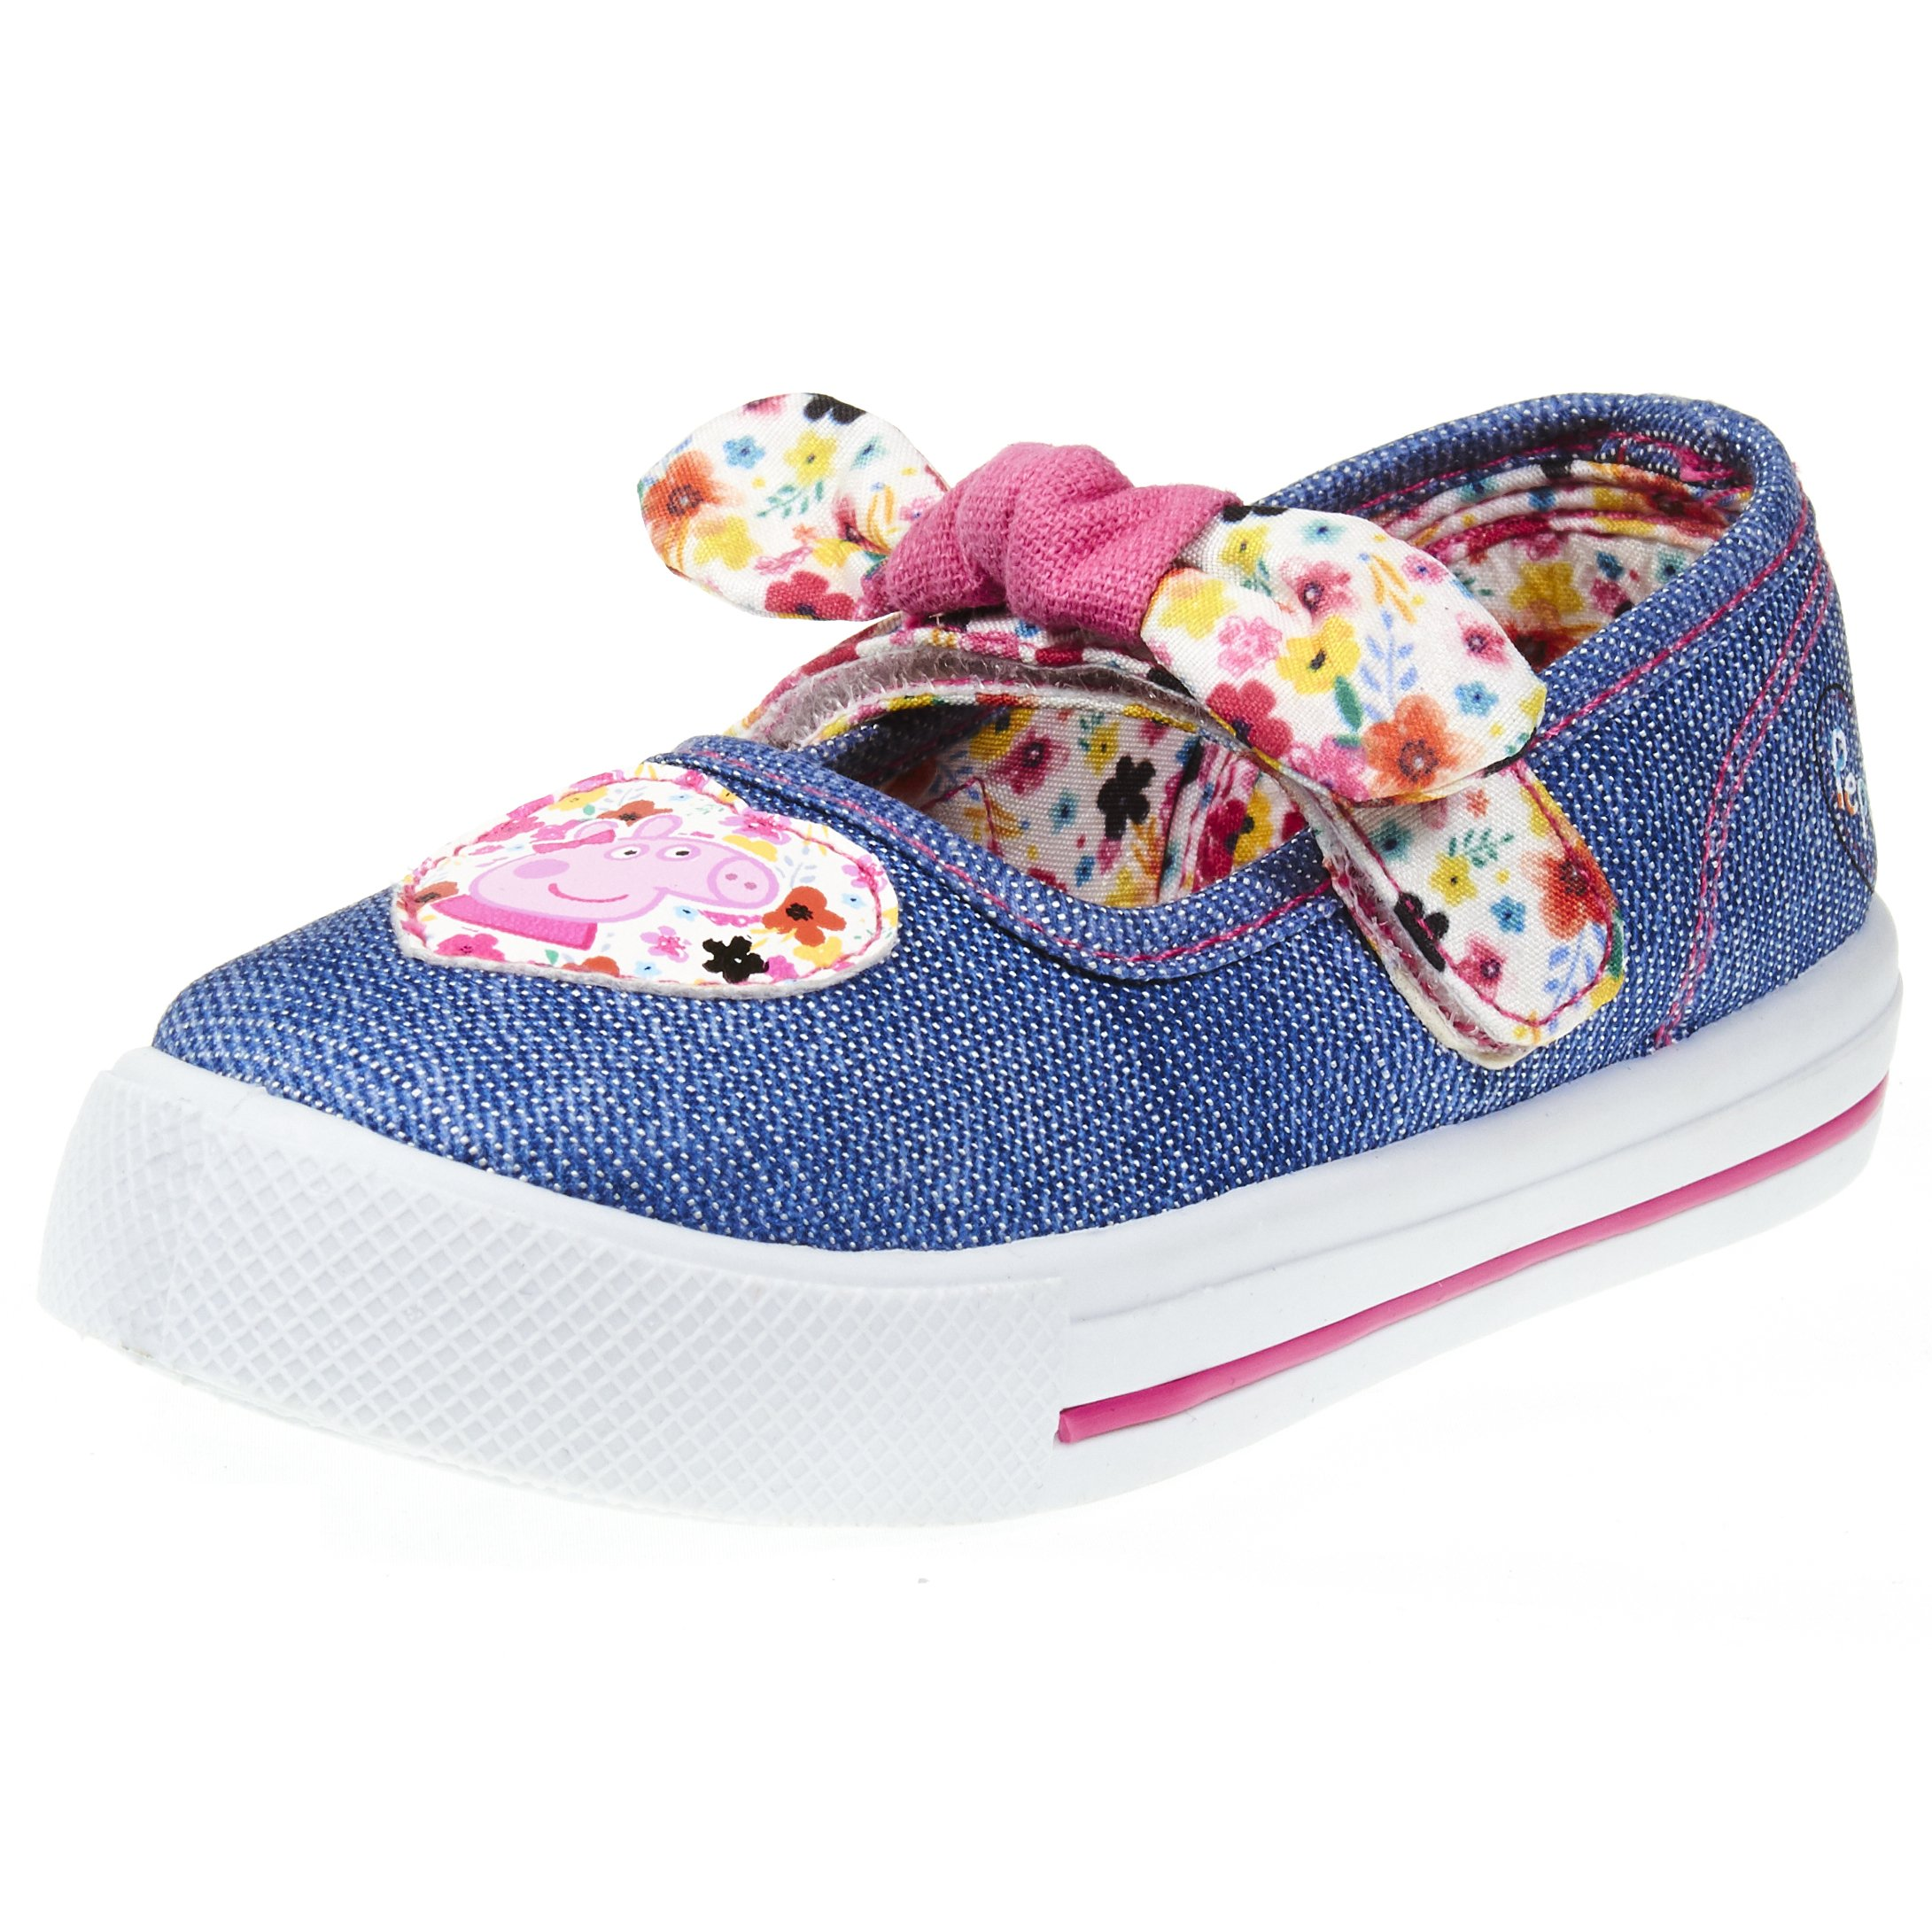 Peppa Pig Kids Toddler Girls Blue Denim Mary Jane Floral Sneakers with Heart Patch and Pink Contrast Stitching, Size 10